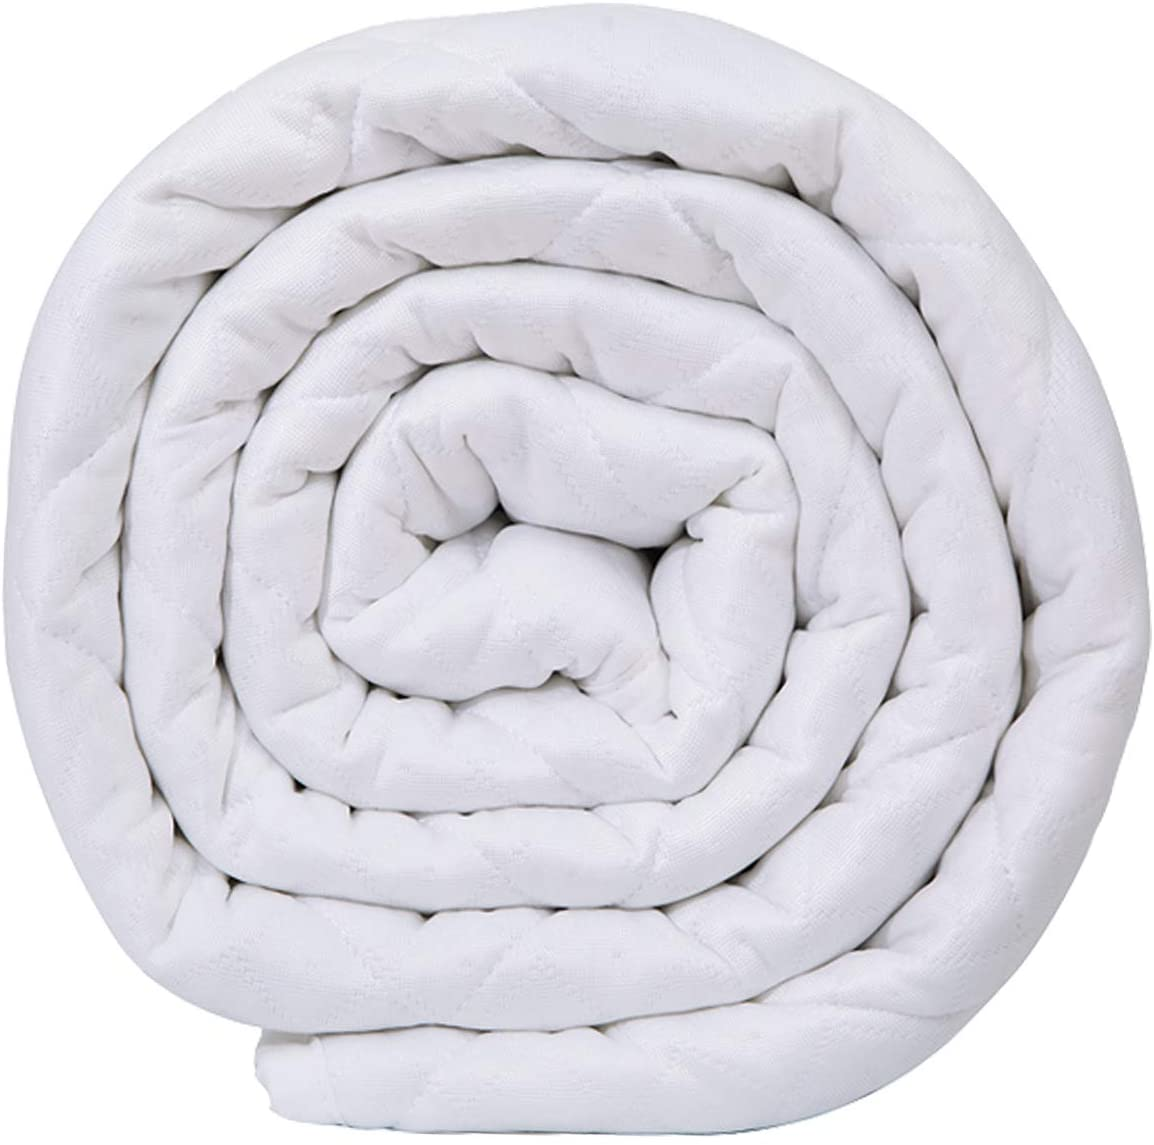 Queen King Size Weighted Blanket In White Knight 11kg Sensorysam